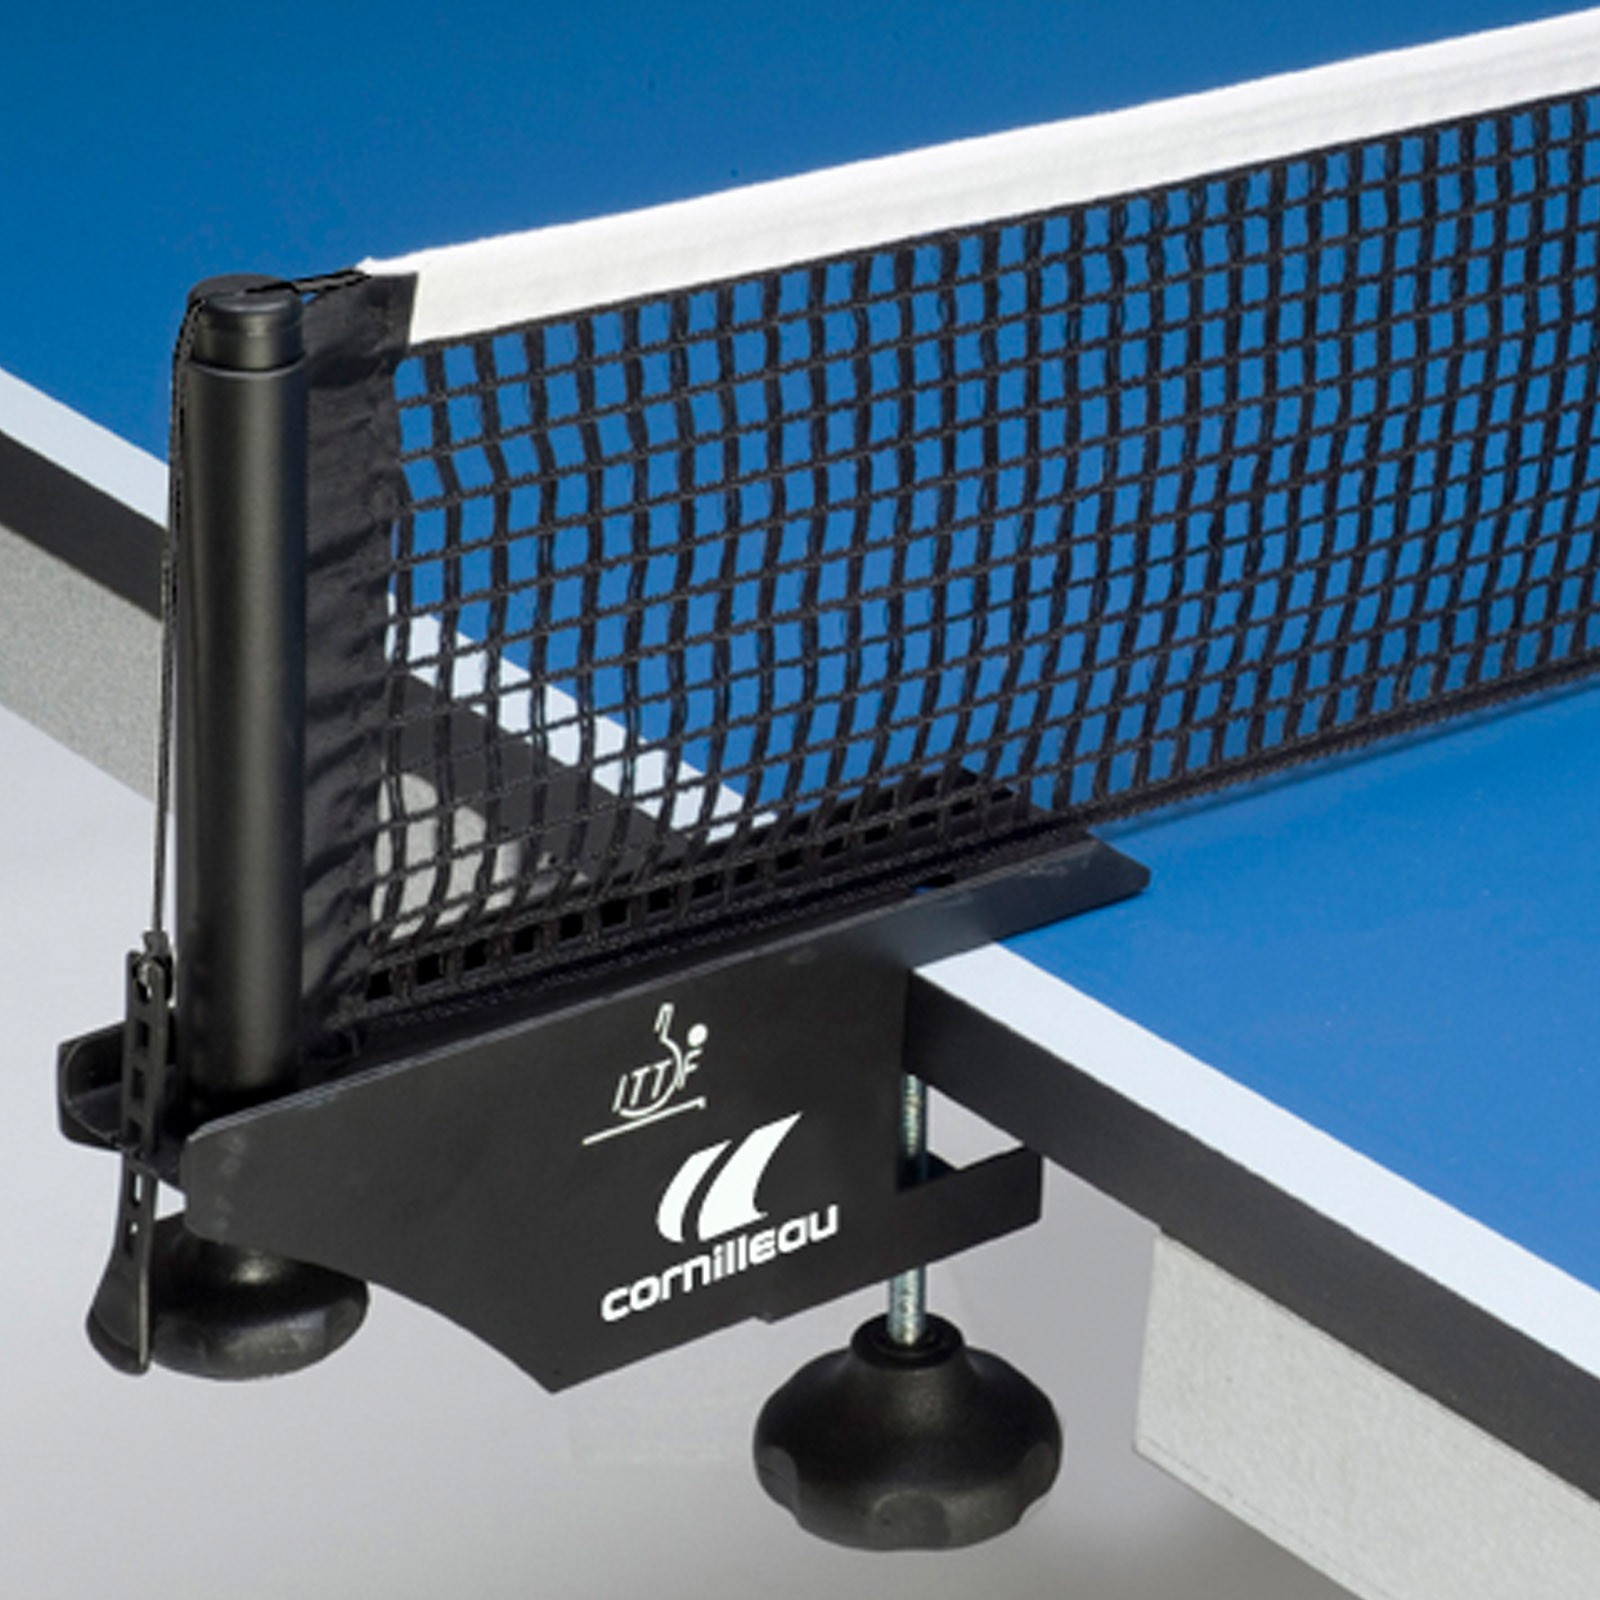 Cornilleau 610 Competition Static Table Tennis Table ...